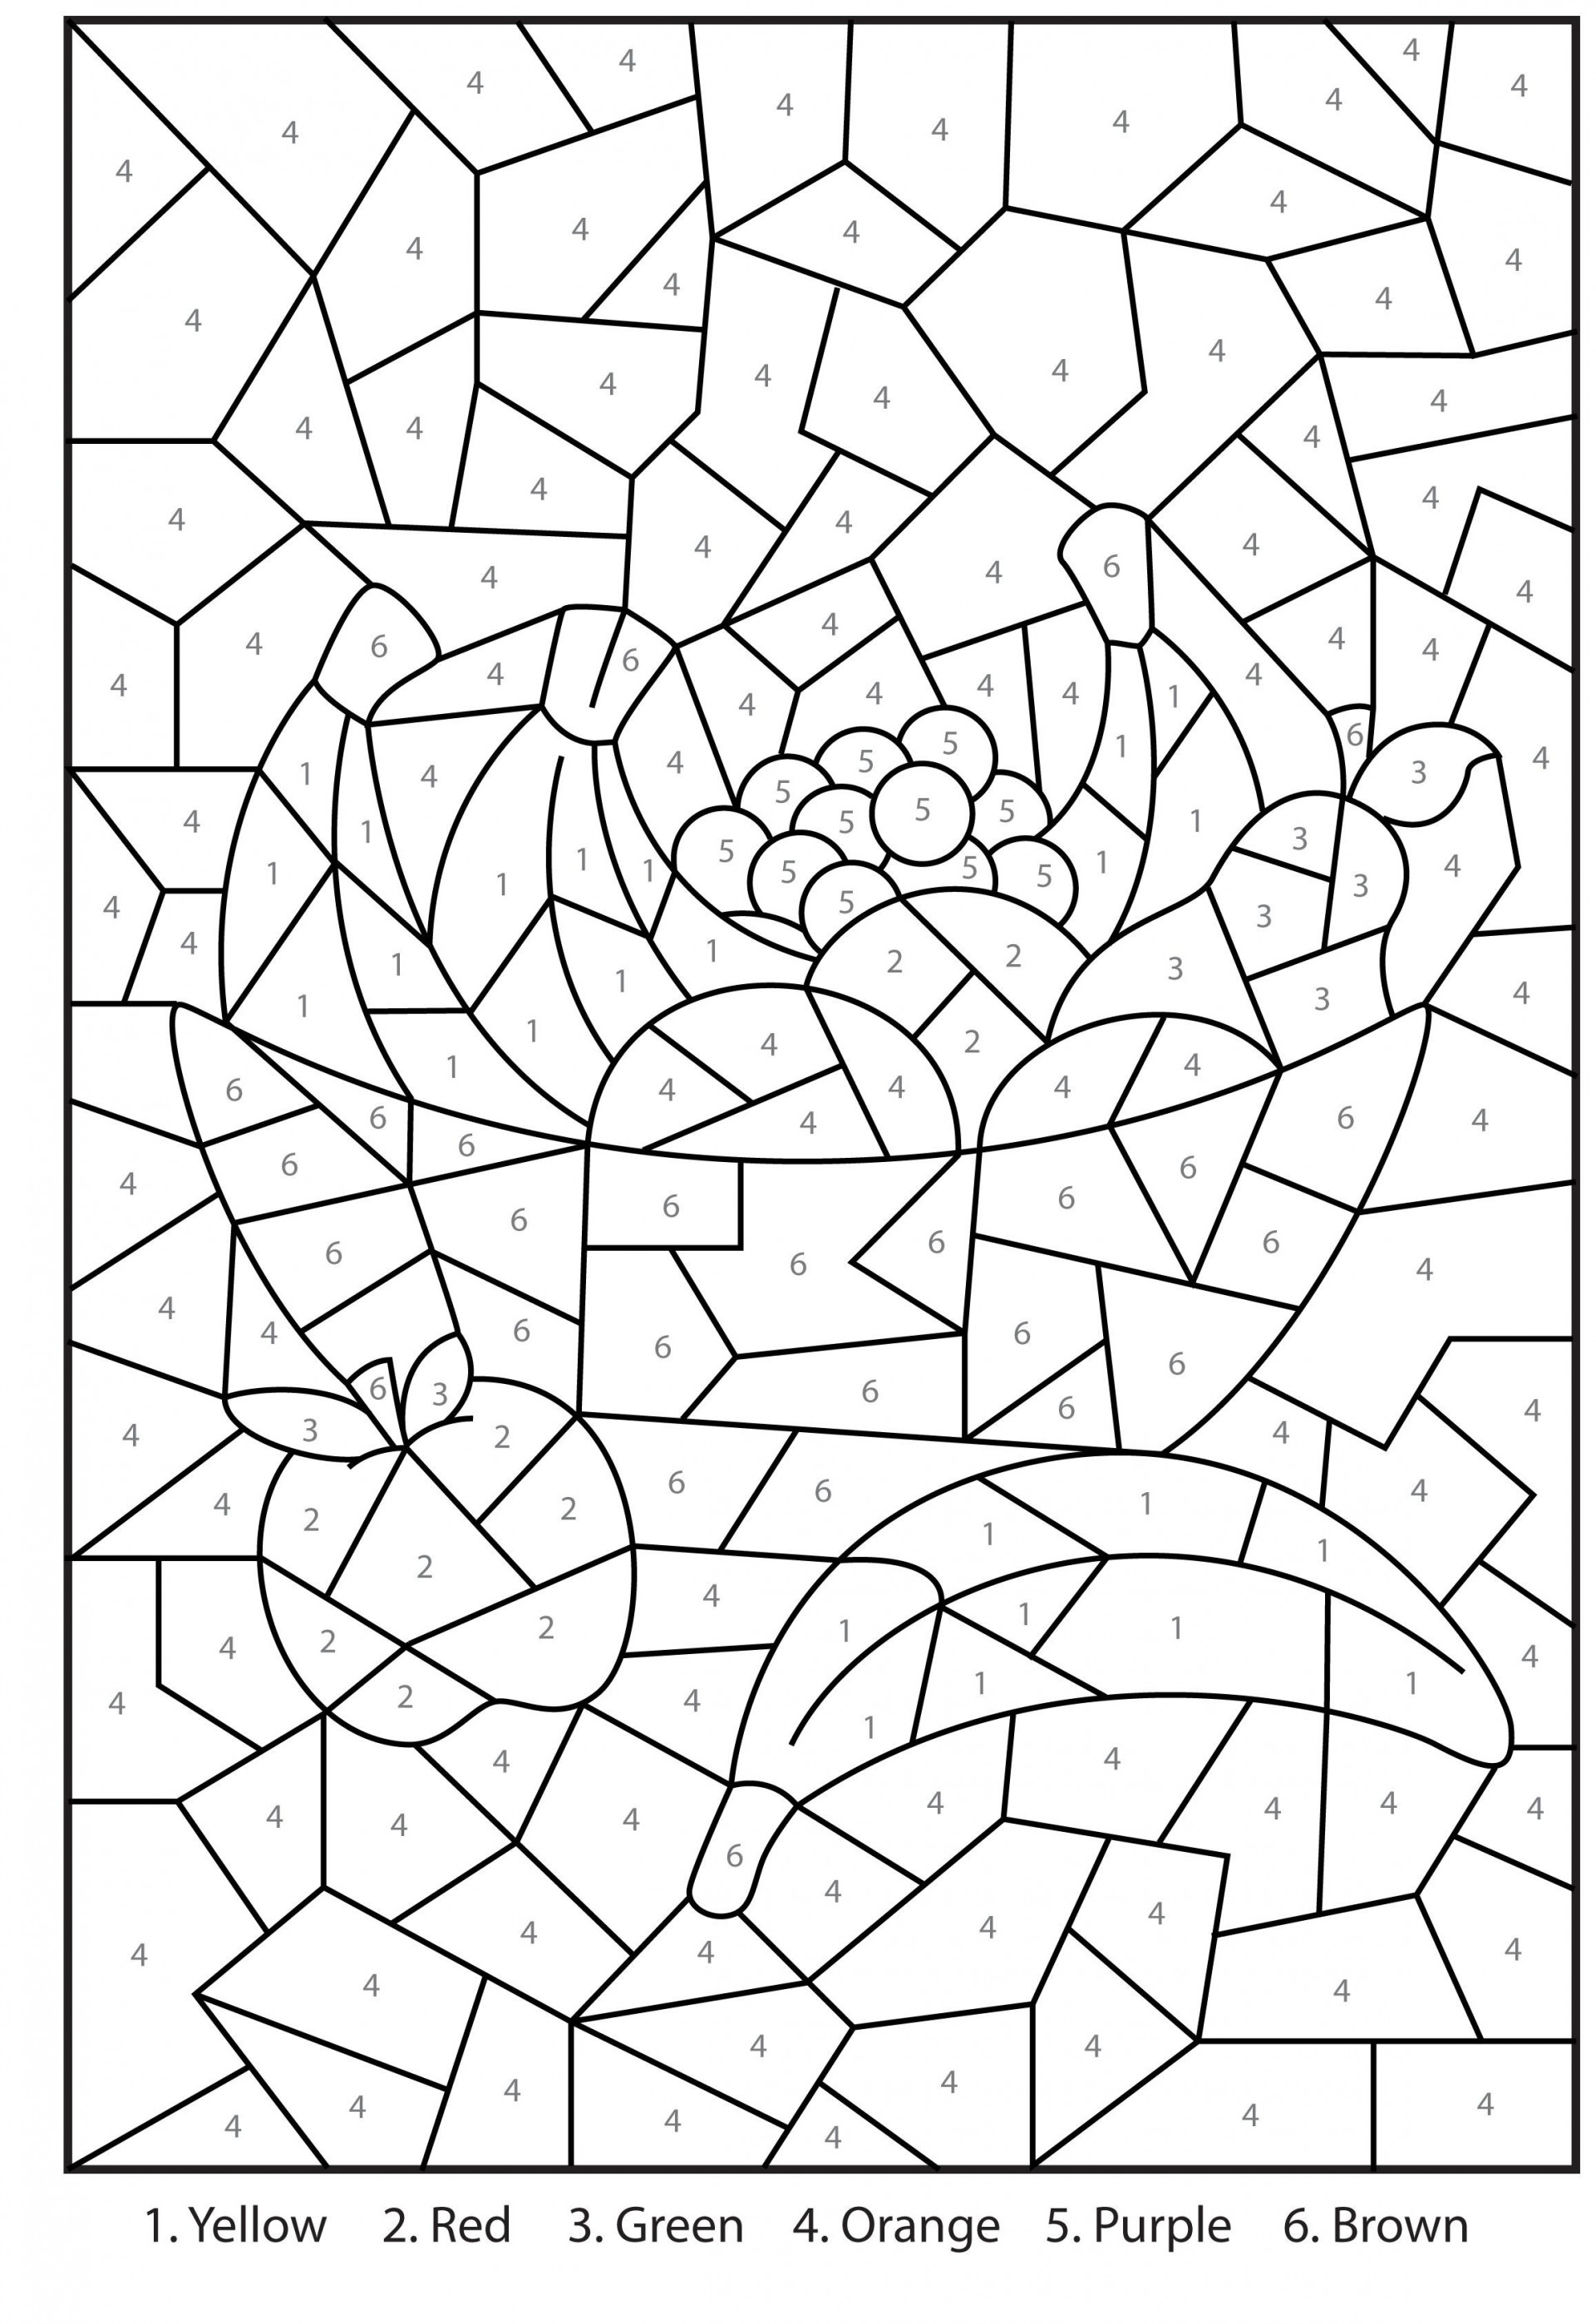 Coloring Pages Colornumber Letter P Imposing Free For Adults - Free Printable Christmas Color By Number Coloring Pages